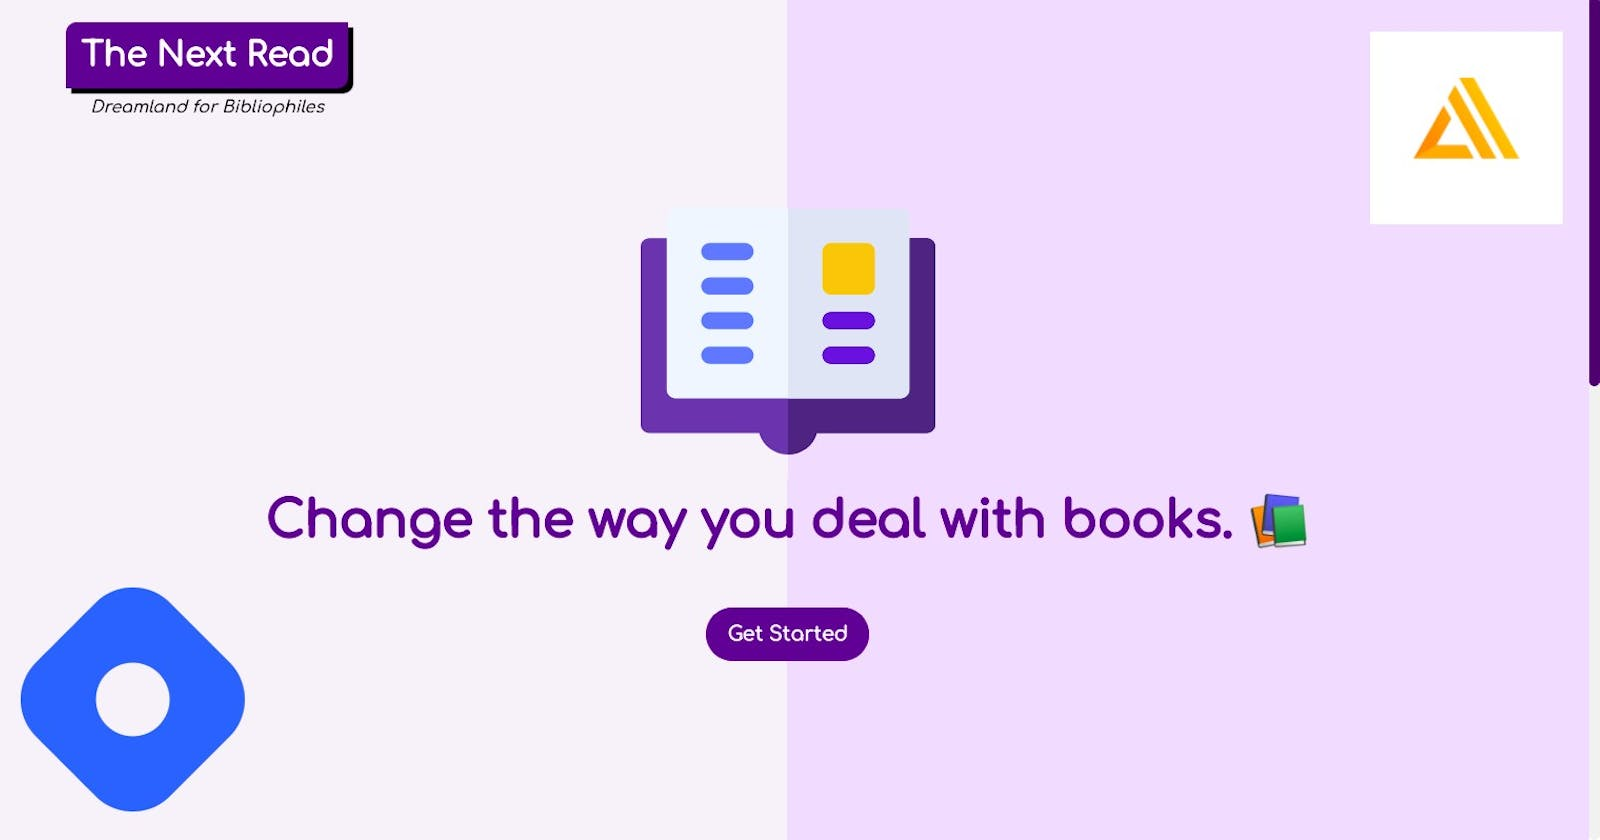 The Next Read - Web app to help you deal with books better